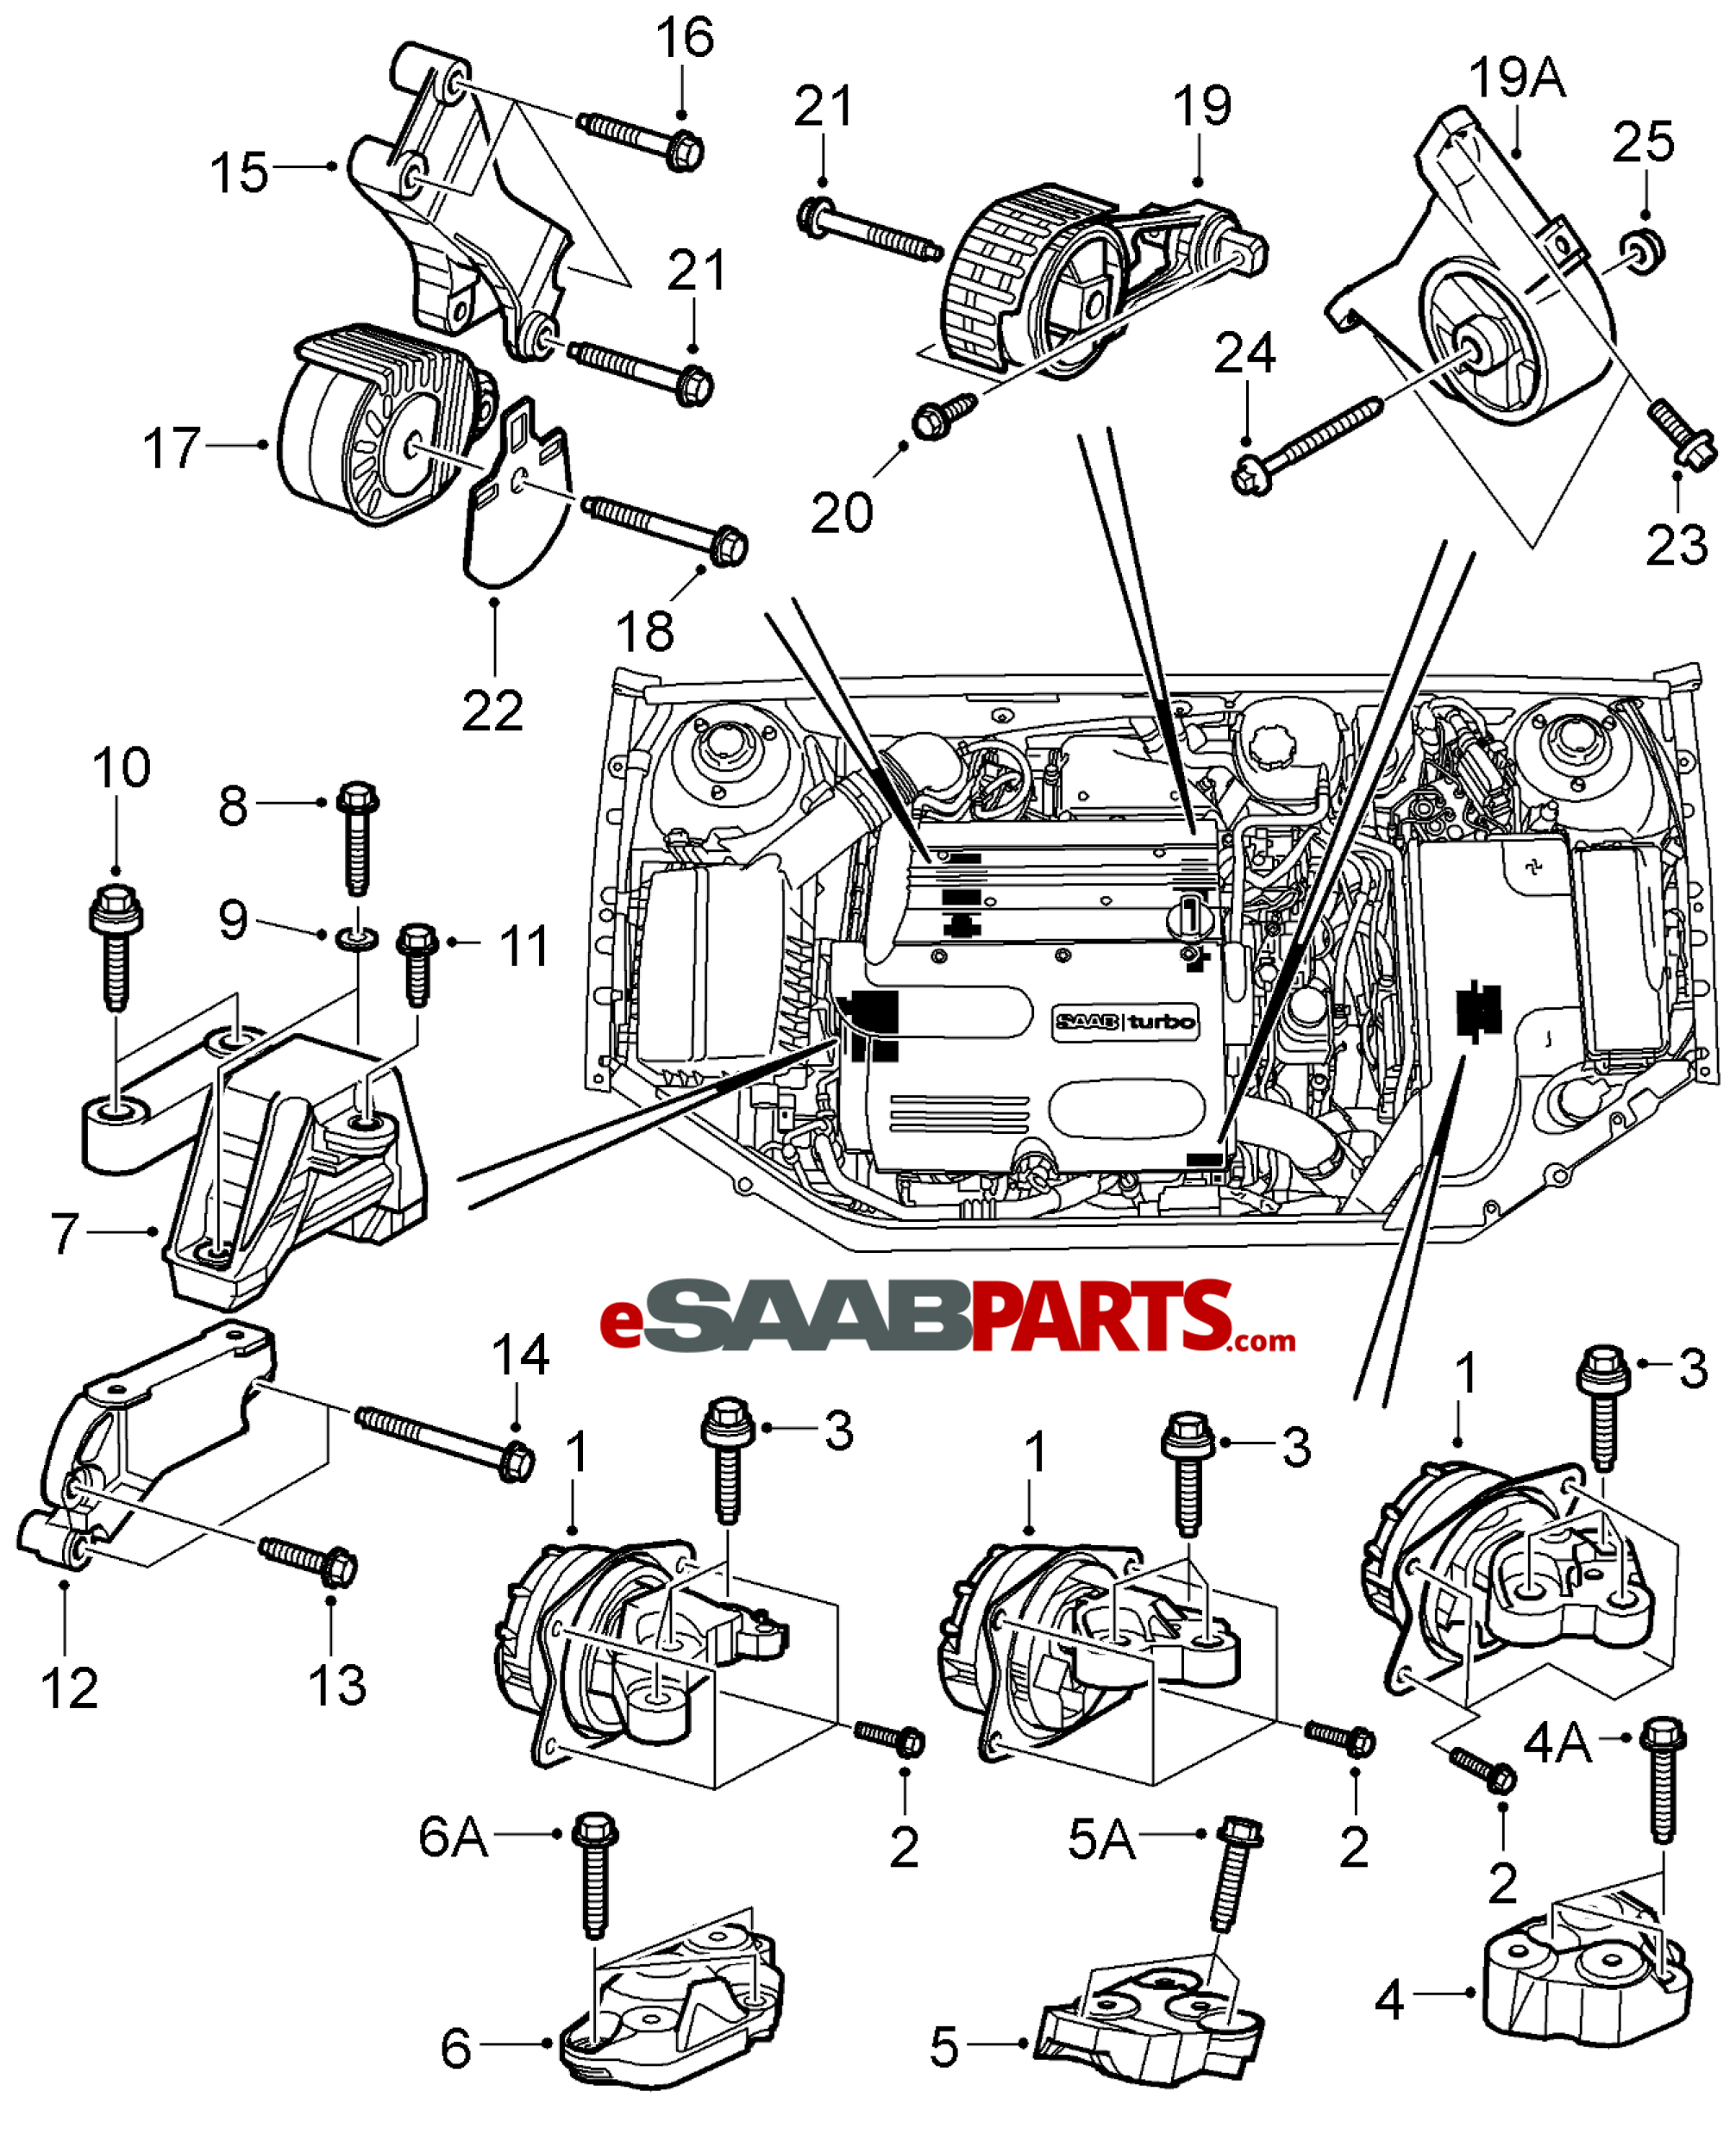 esaabparts com saab 9 3 9440 u003e engine parts u003e engine mounts rh esaabparts com 2006 Saab 9-3 Saab 9-3 Engine